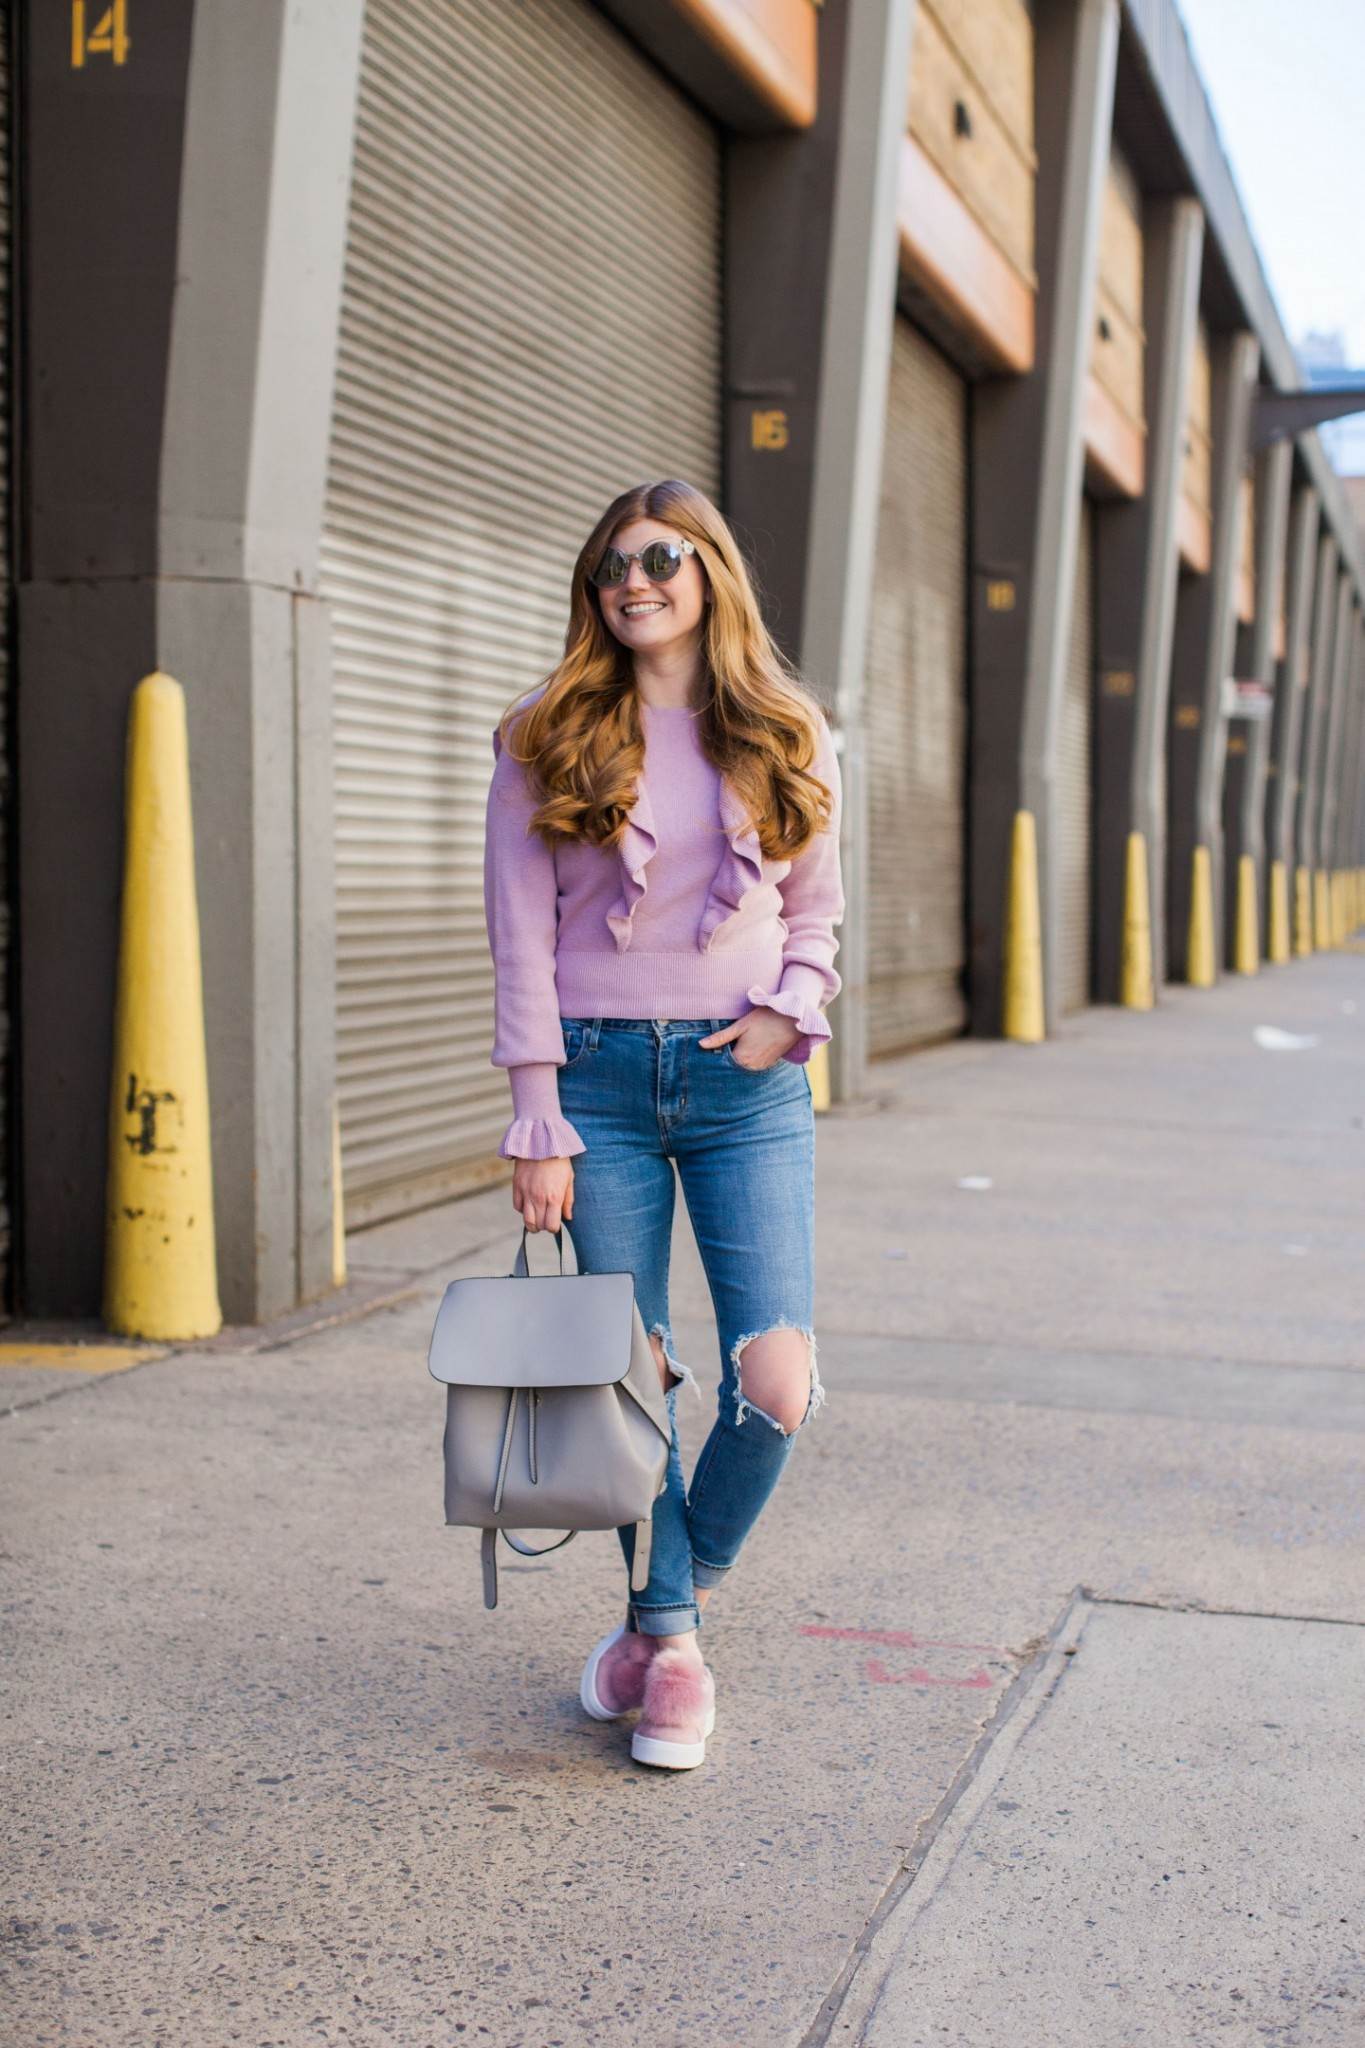 Lifestyle blogger Mollie Sheperdson shares what she wore to Mara Hoffman at NYFW